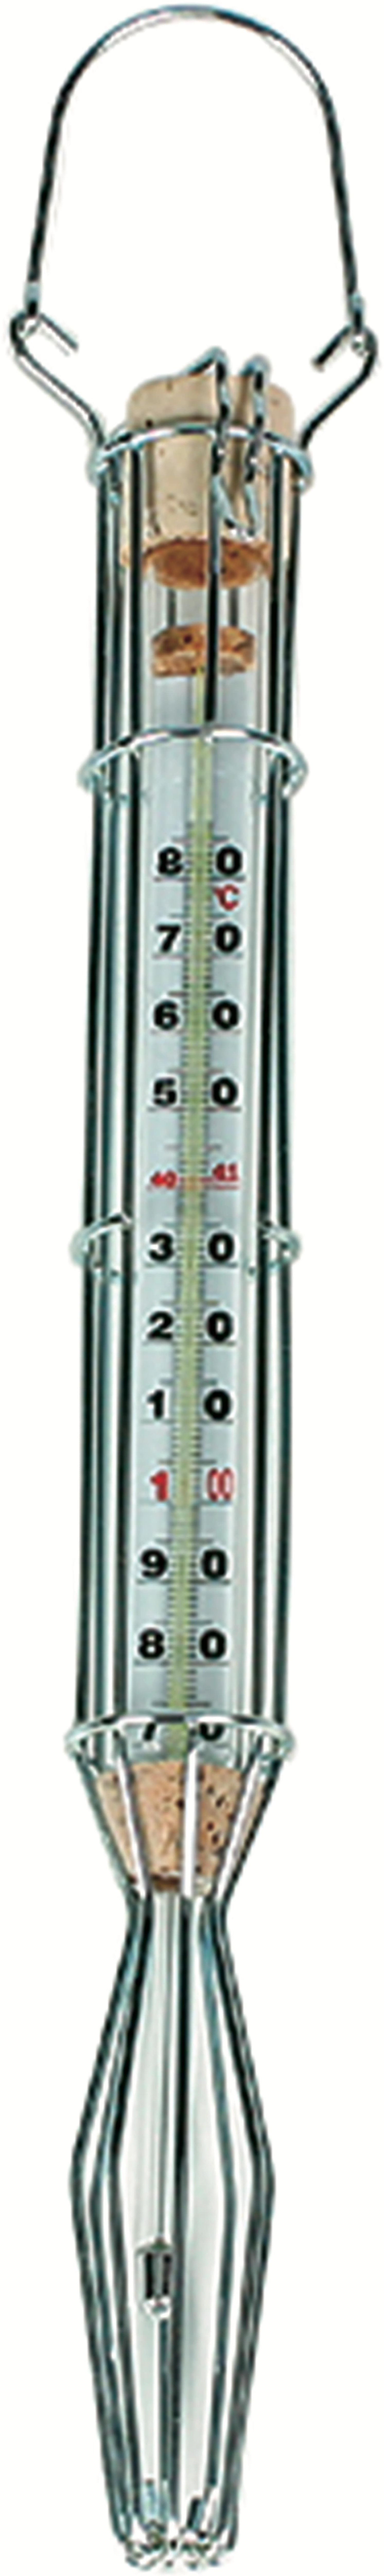 Thermometer 160003